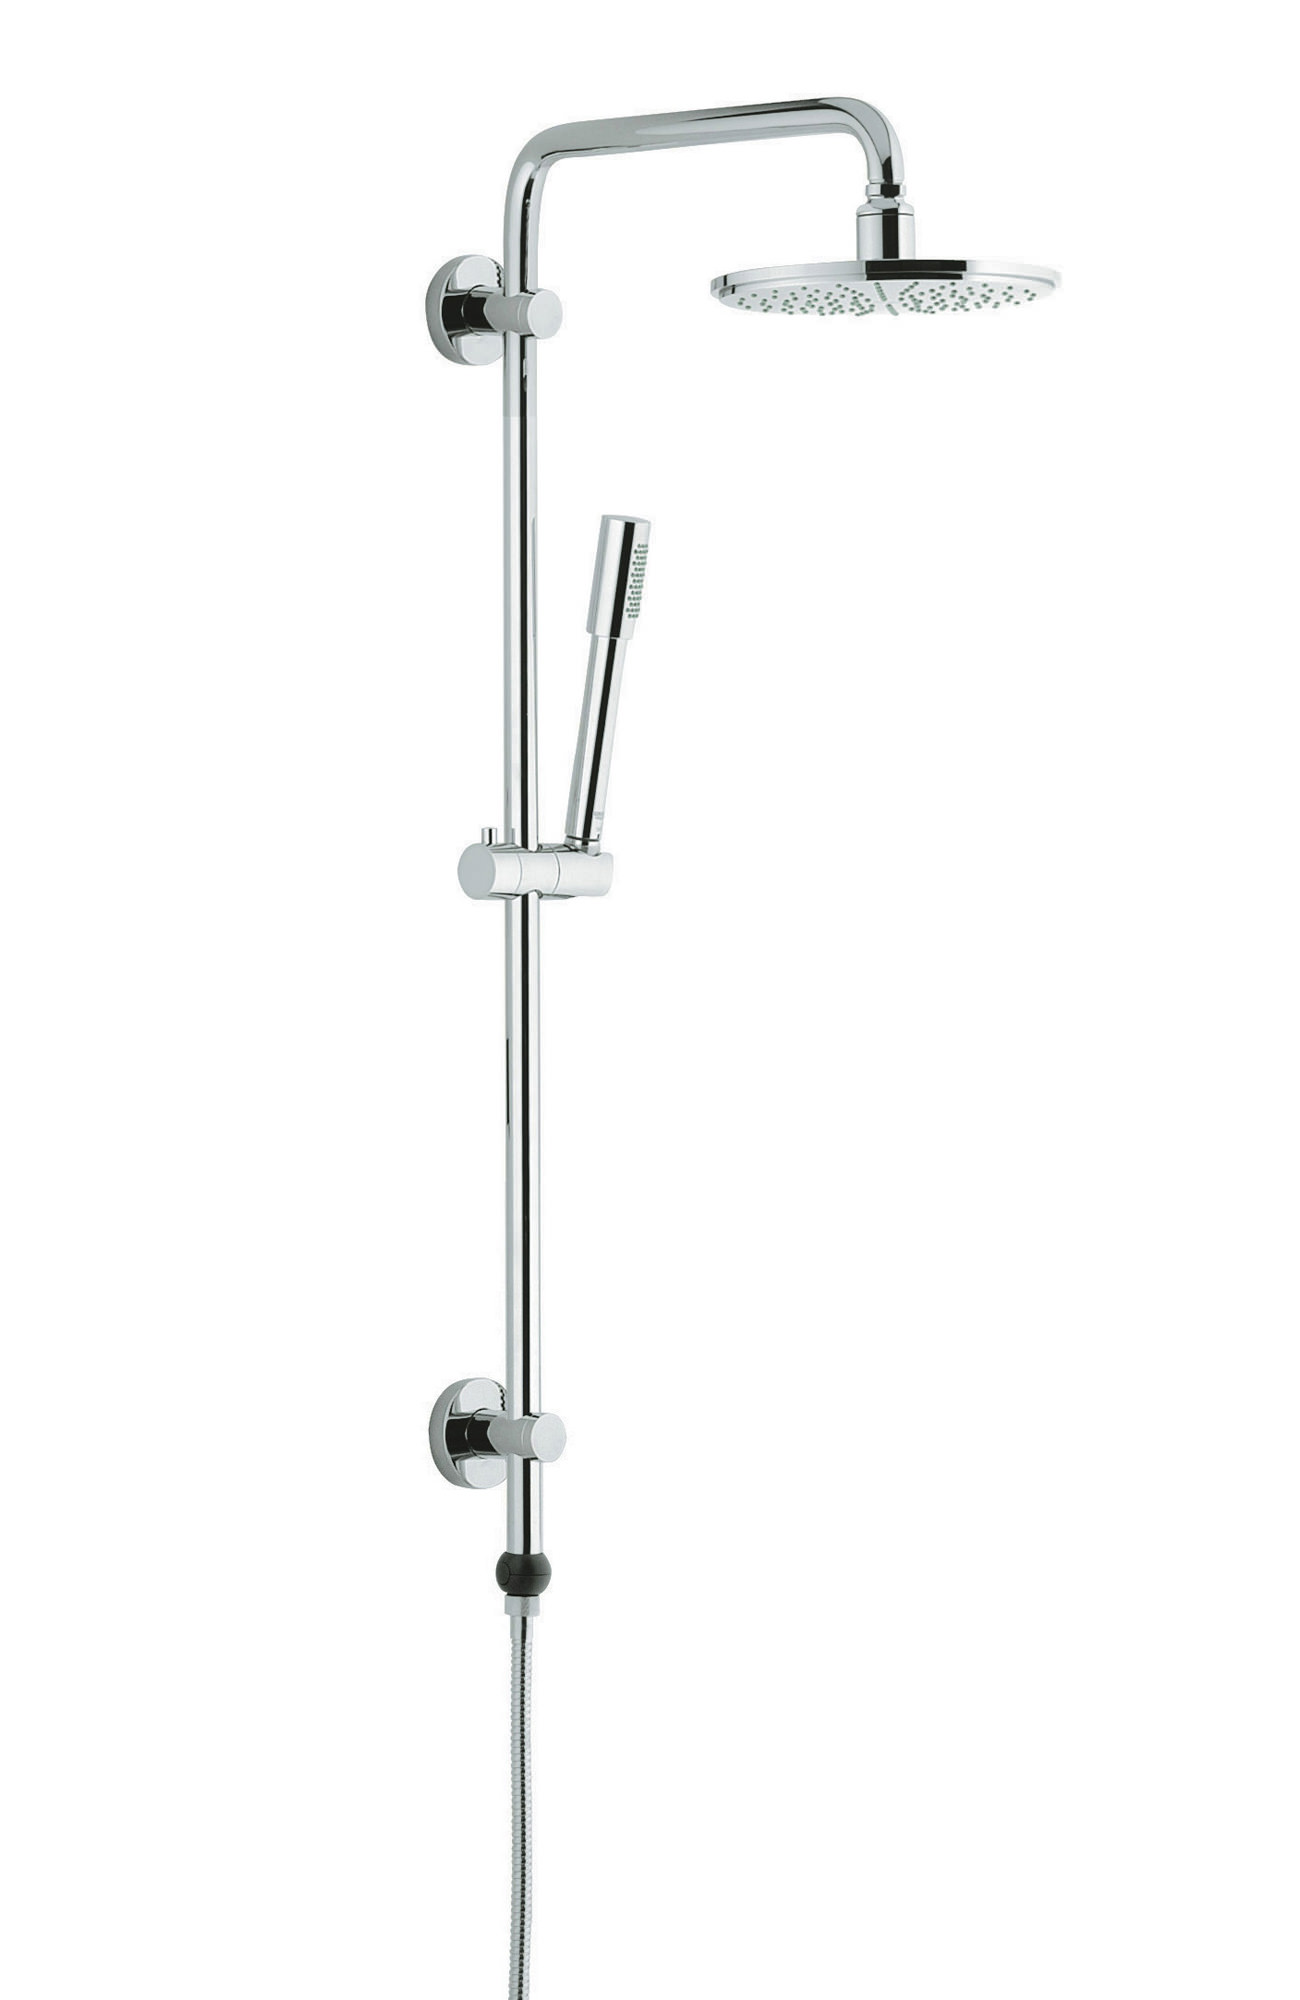 Grohe Rainshower Wall Mounted Shower System Chrome 27030000